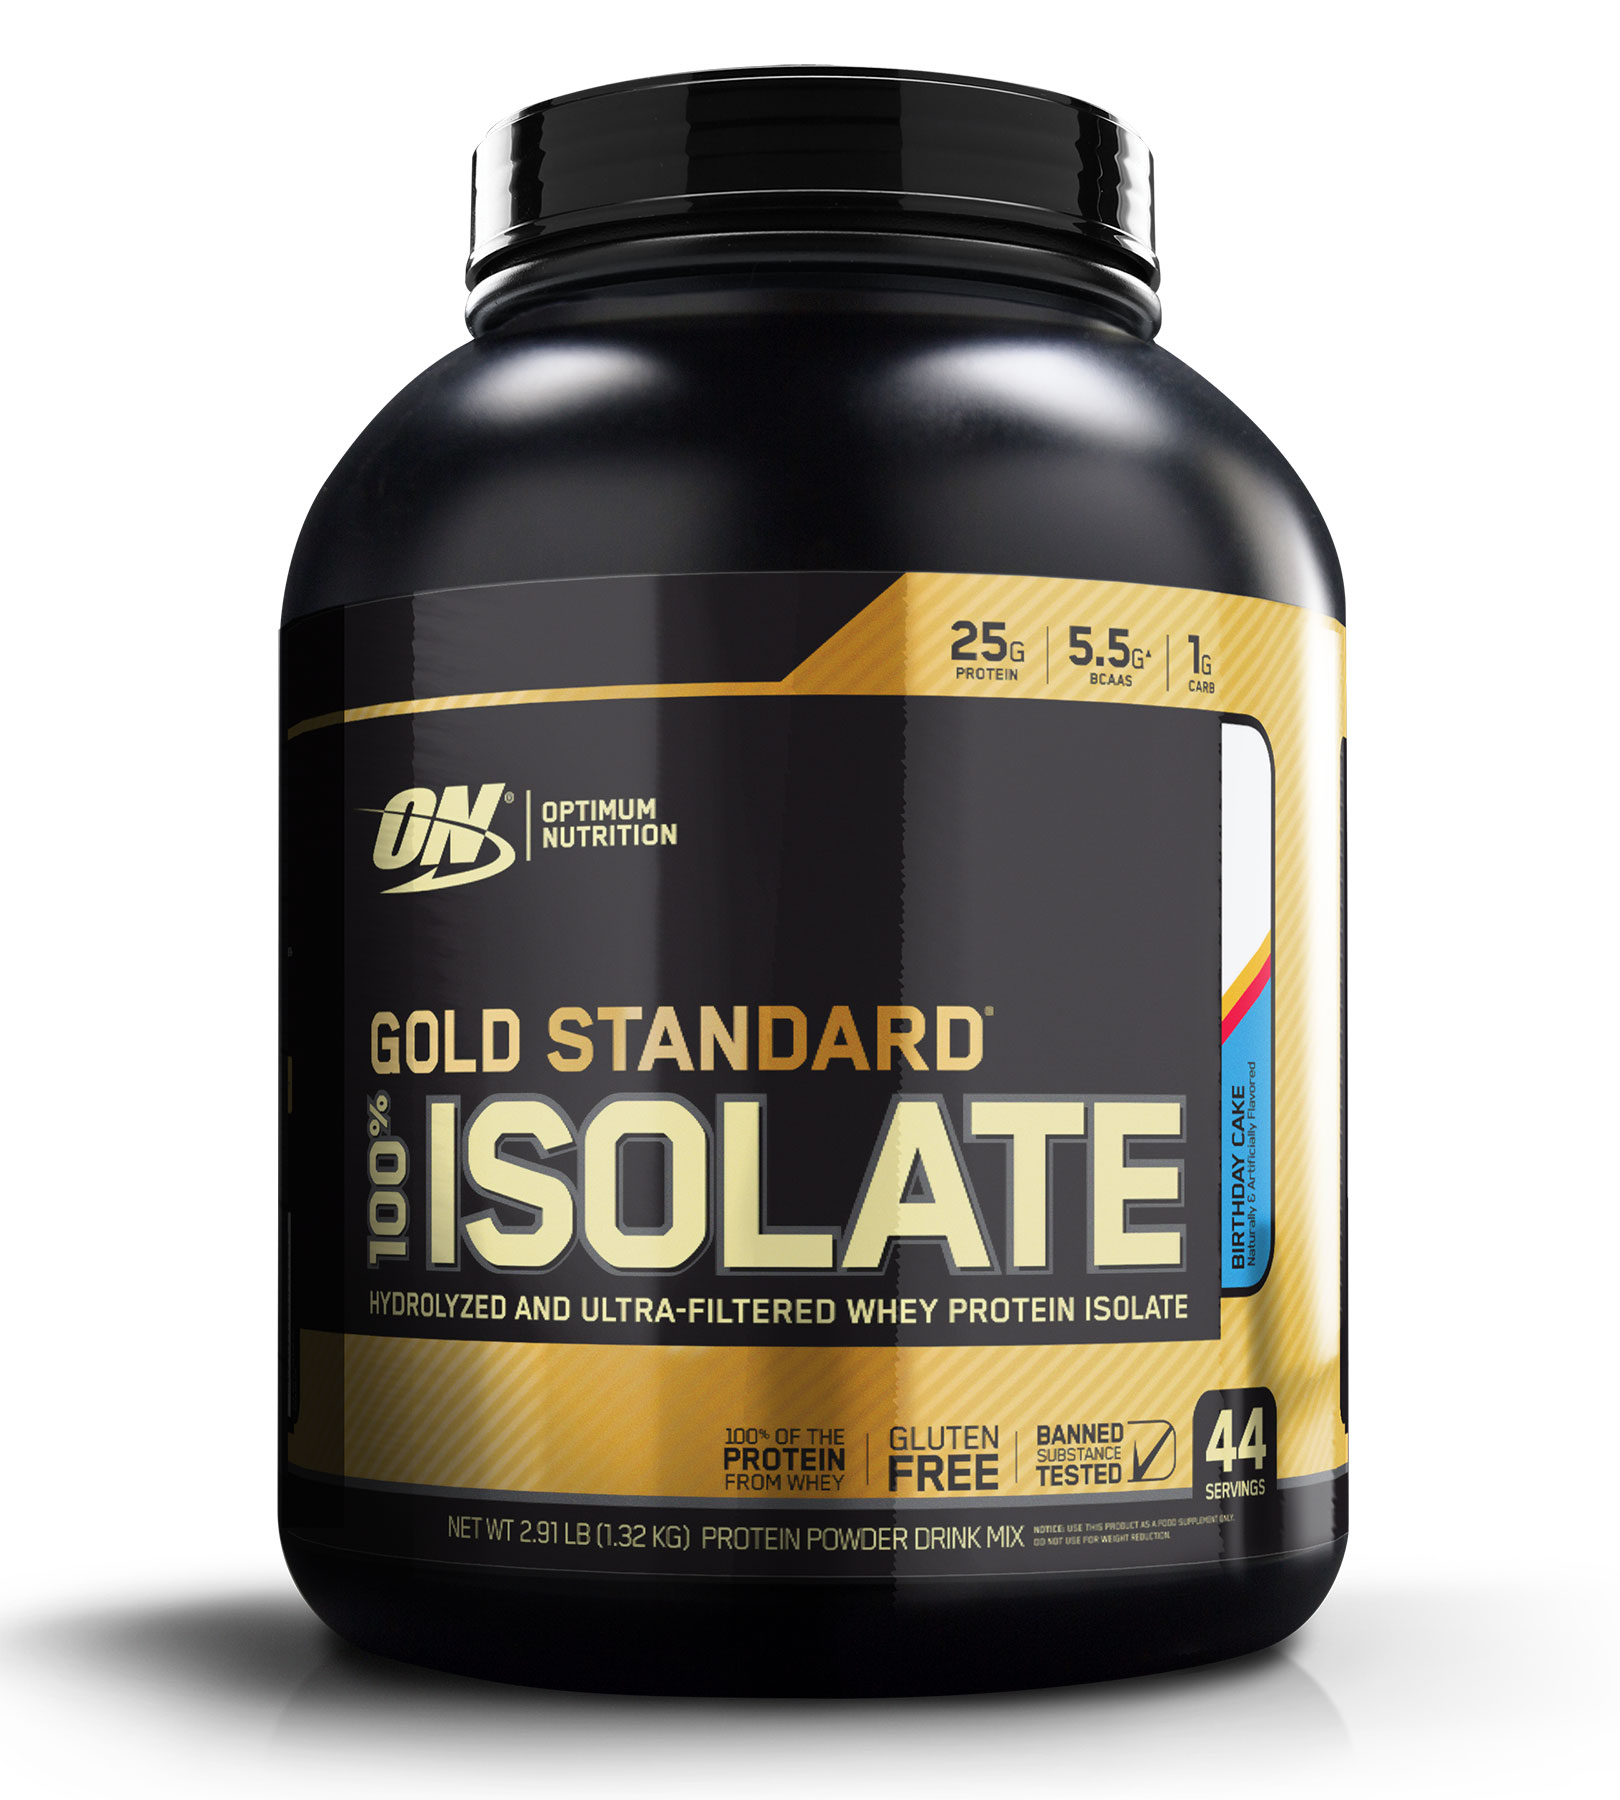 100% Gold Standard Isolate Optimum Nutrition (1320 g)